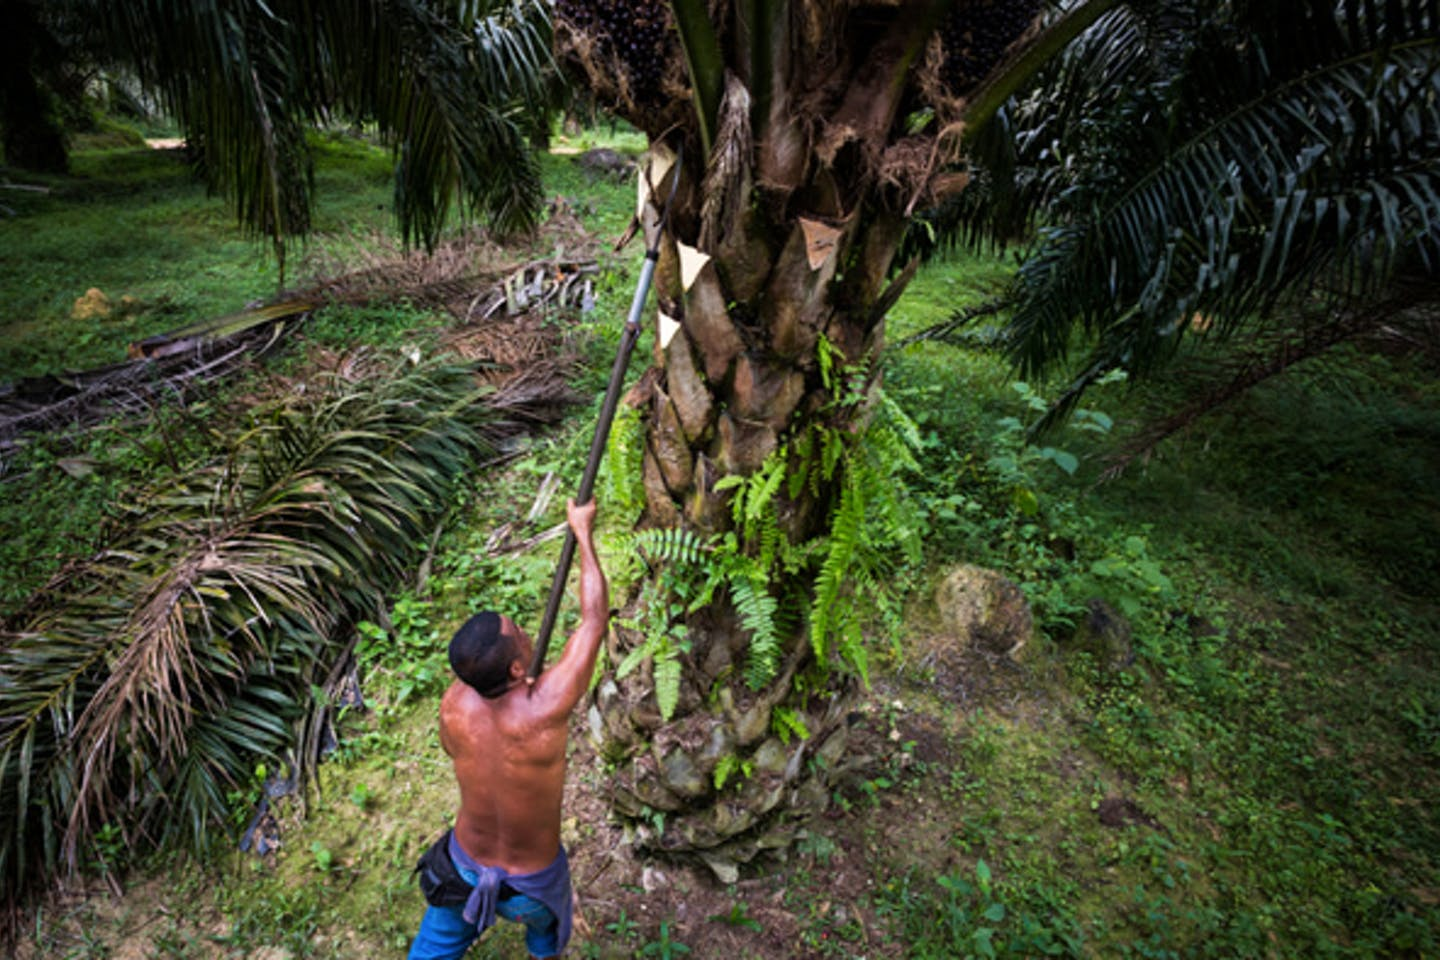 palm oil harvesting in Malaysia